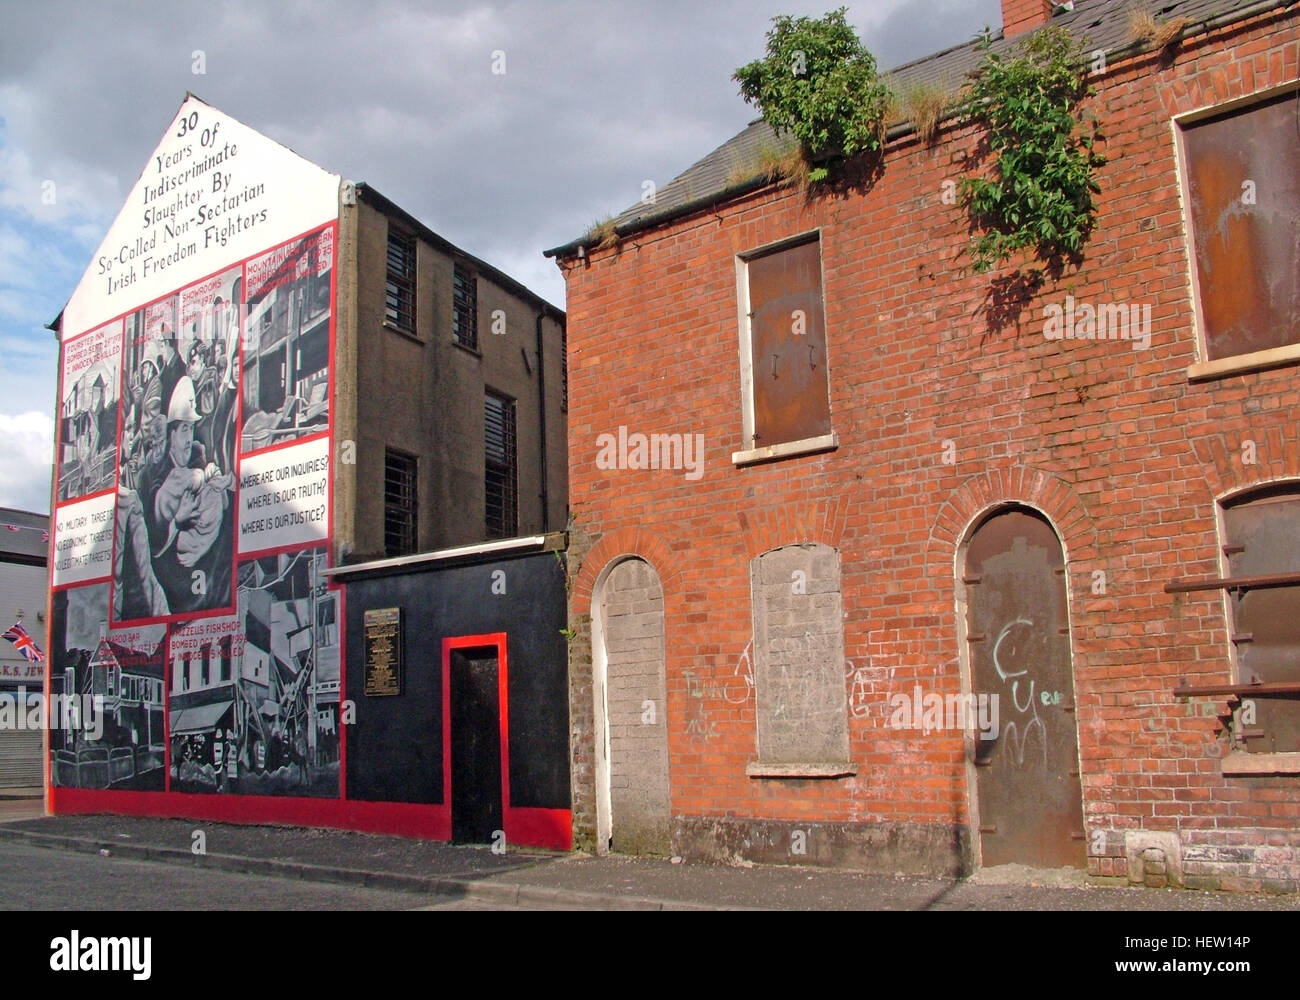 Shankill Road Mural -thirty years of slaughter, West Belfast, Northern Ireland, UK Stock Photo